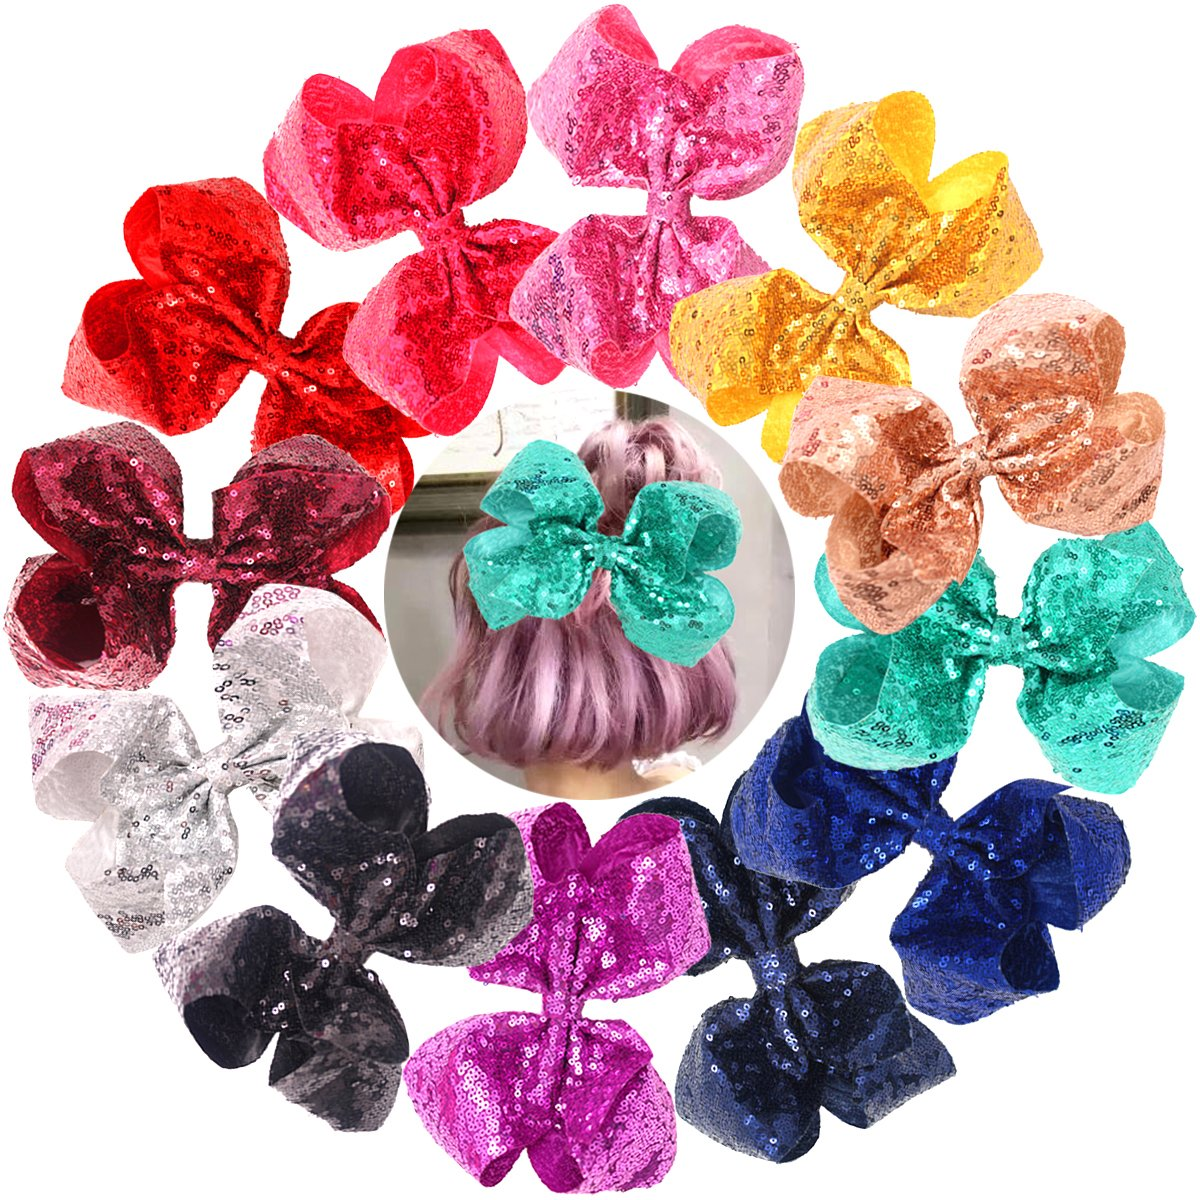 Bling 8 Inch Big Sequins Hair Bows Alligator Clips for Girls, Toddlers, Teens, Senior, Women Any Occassion Pack of 12 CELLOT